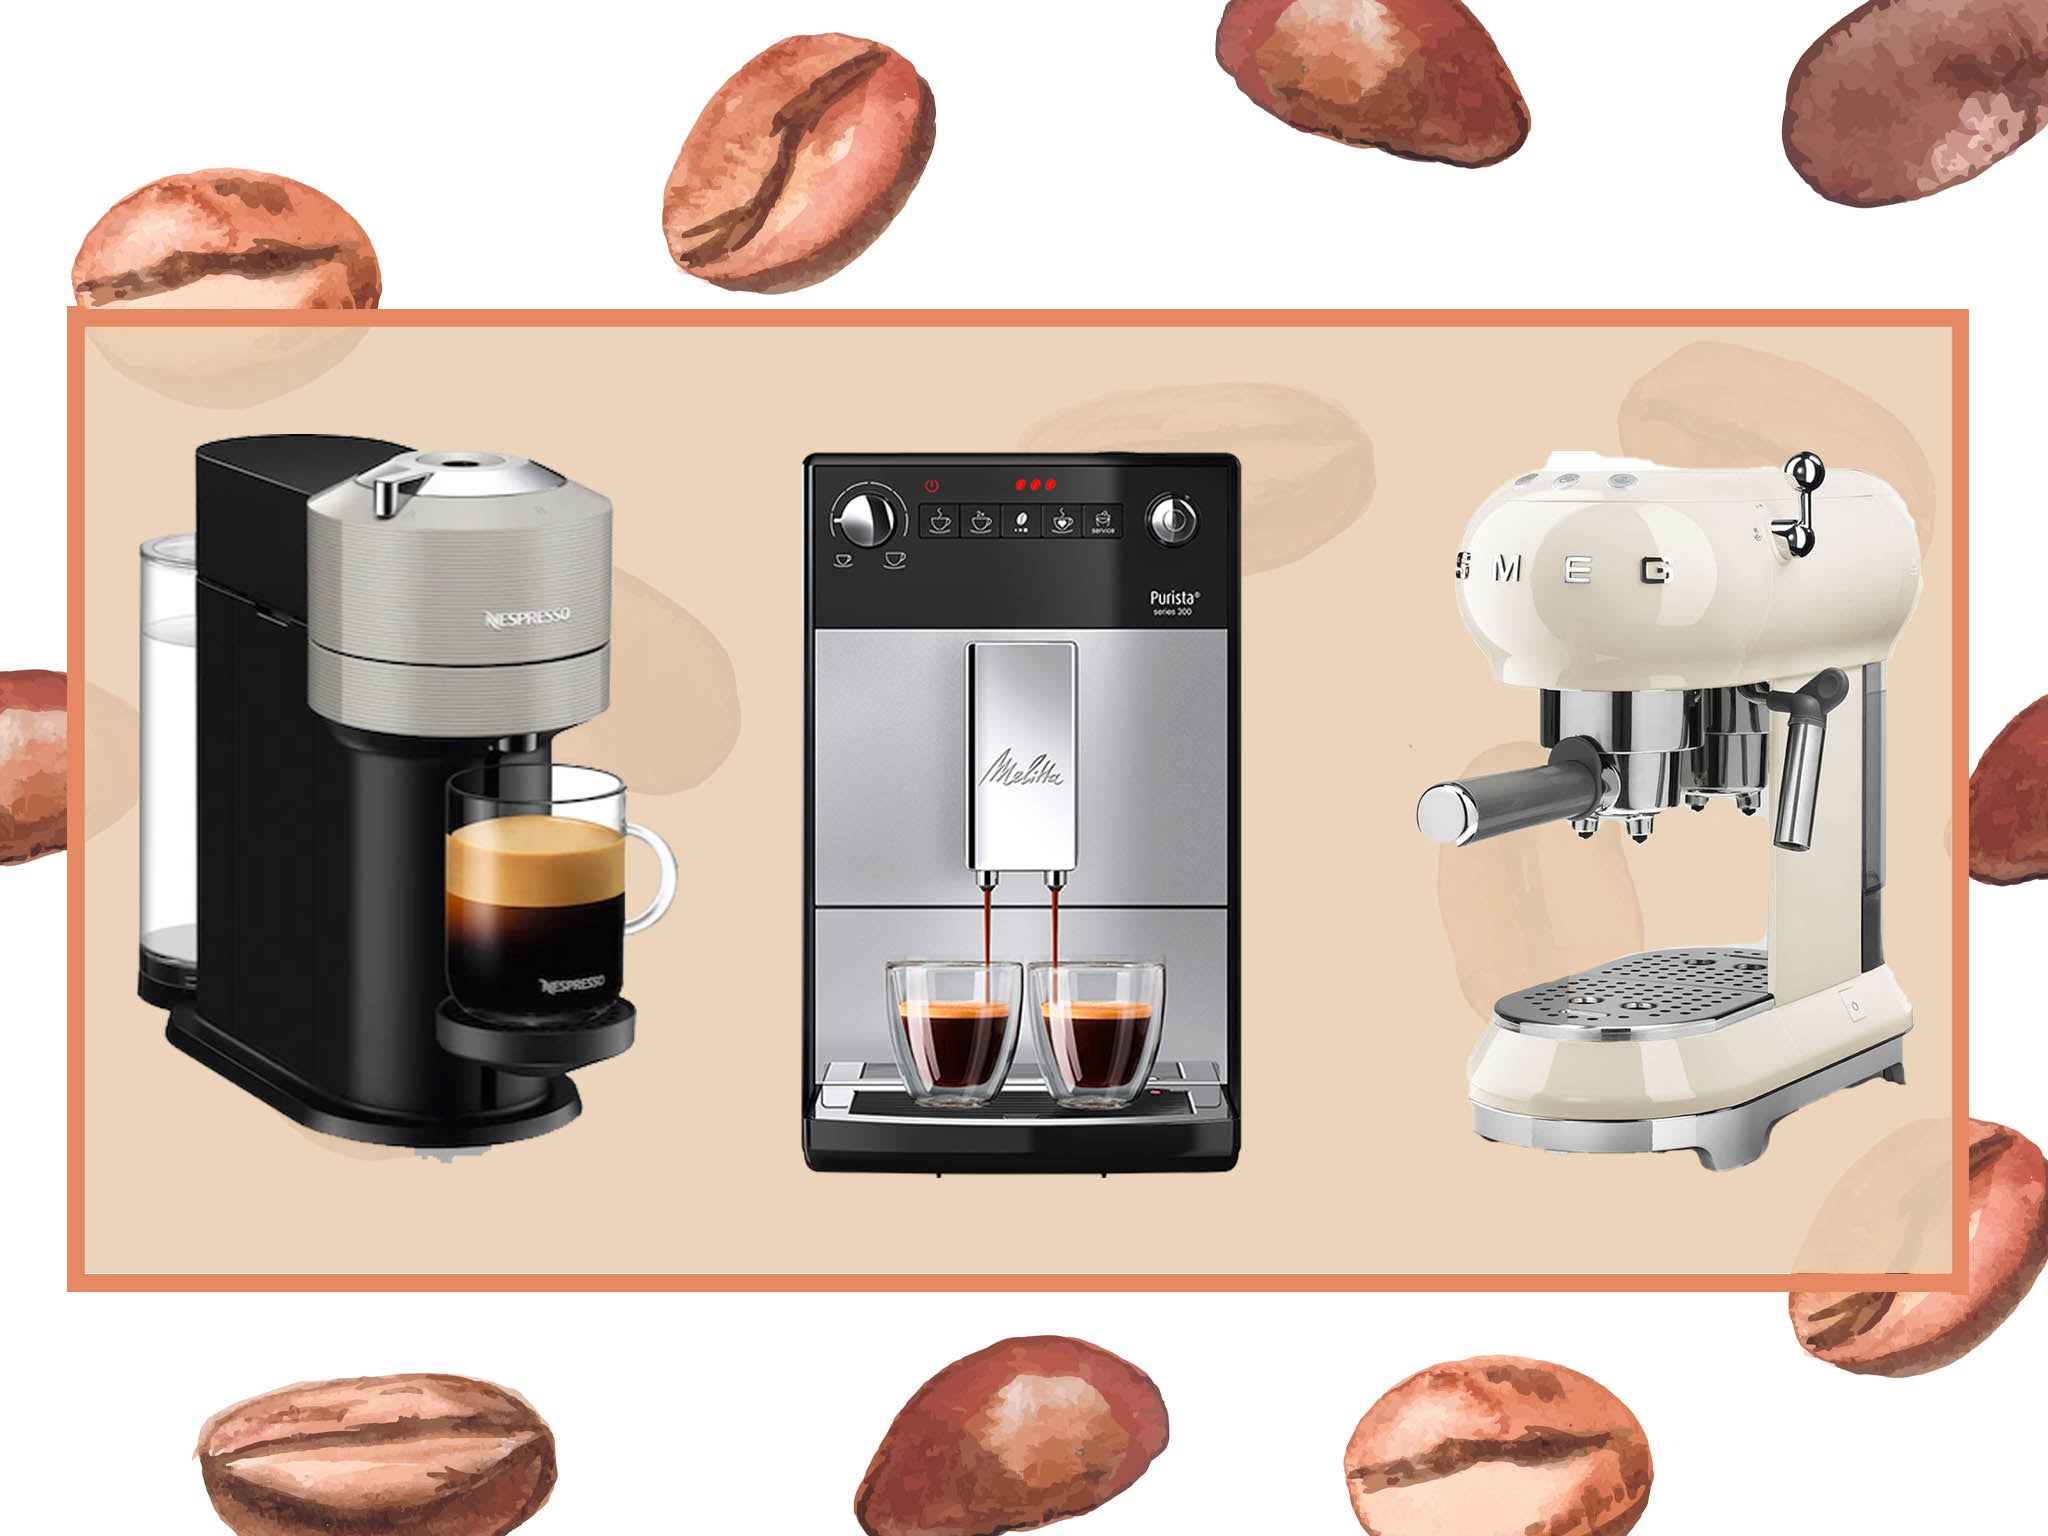 Best Espresso Machine 2020 Barista Quality Models For Beans And Pods The Independent